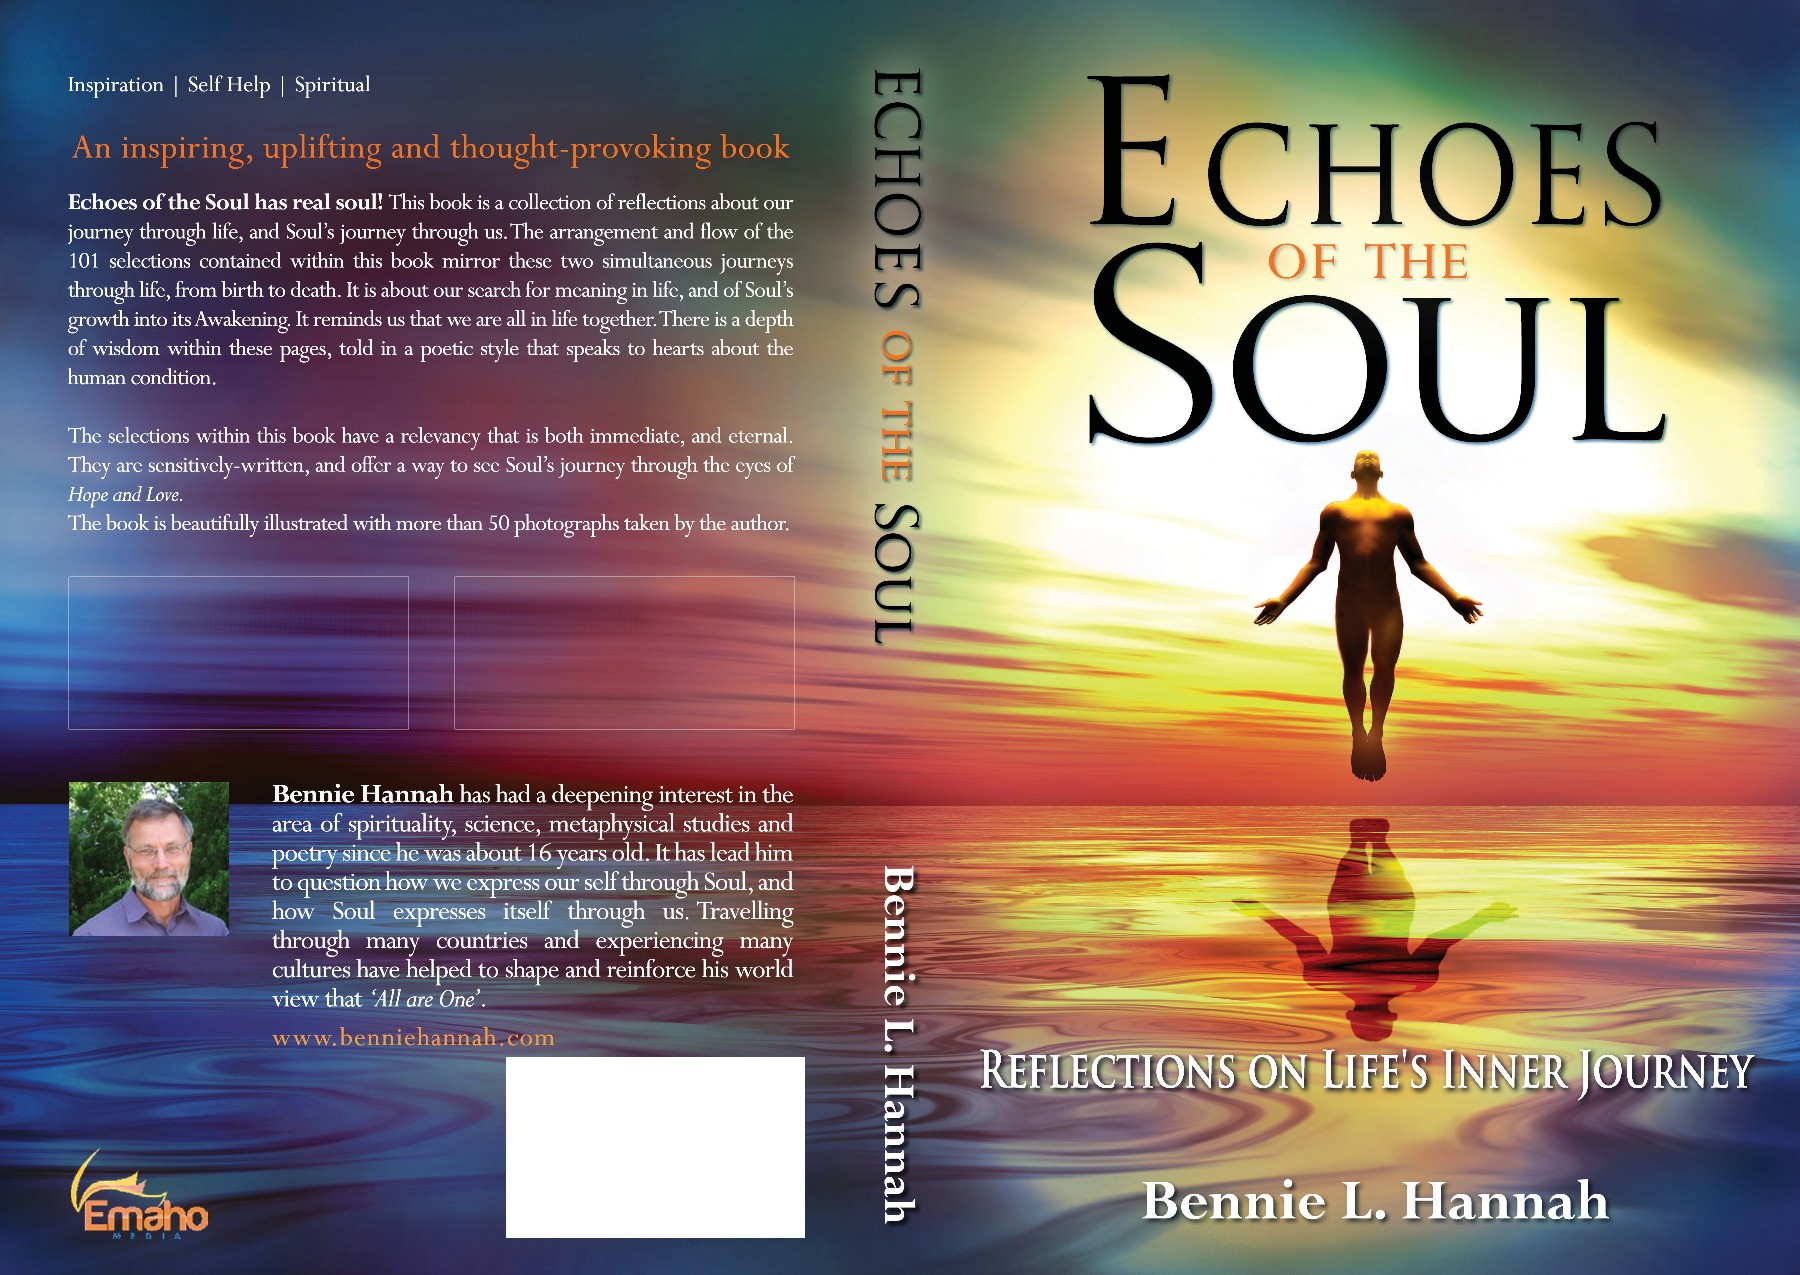 Design a book cover for the book 'Echoes of the Soul'